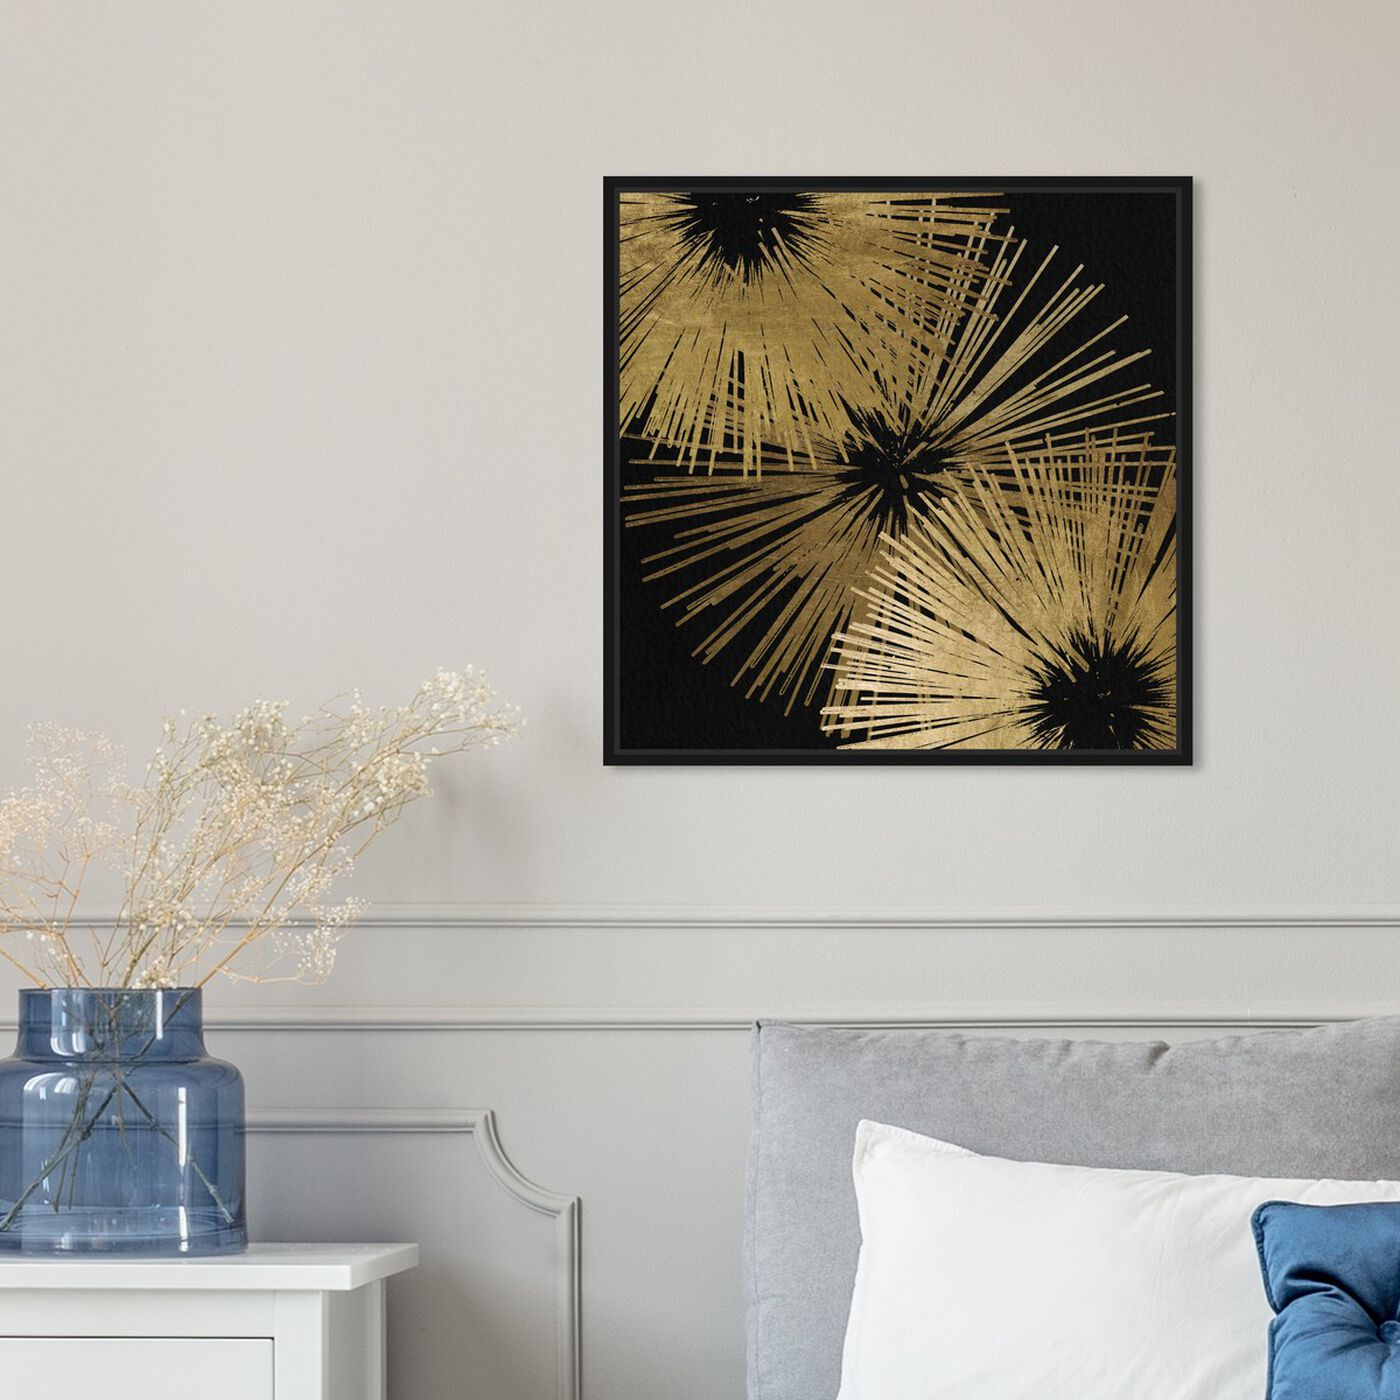 Hanging view of Sunburst Glam featuring abstract and shapes art.